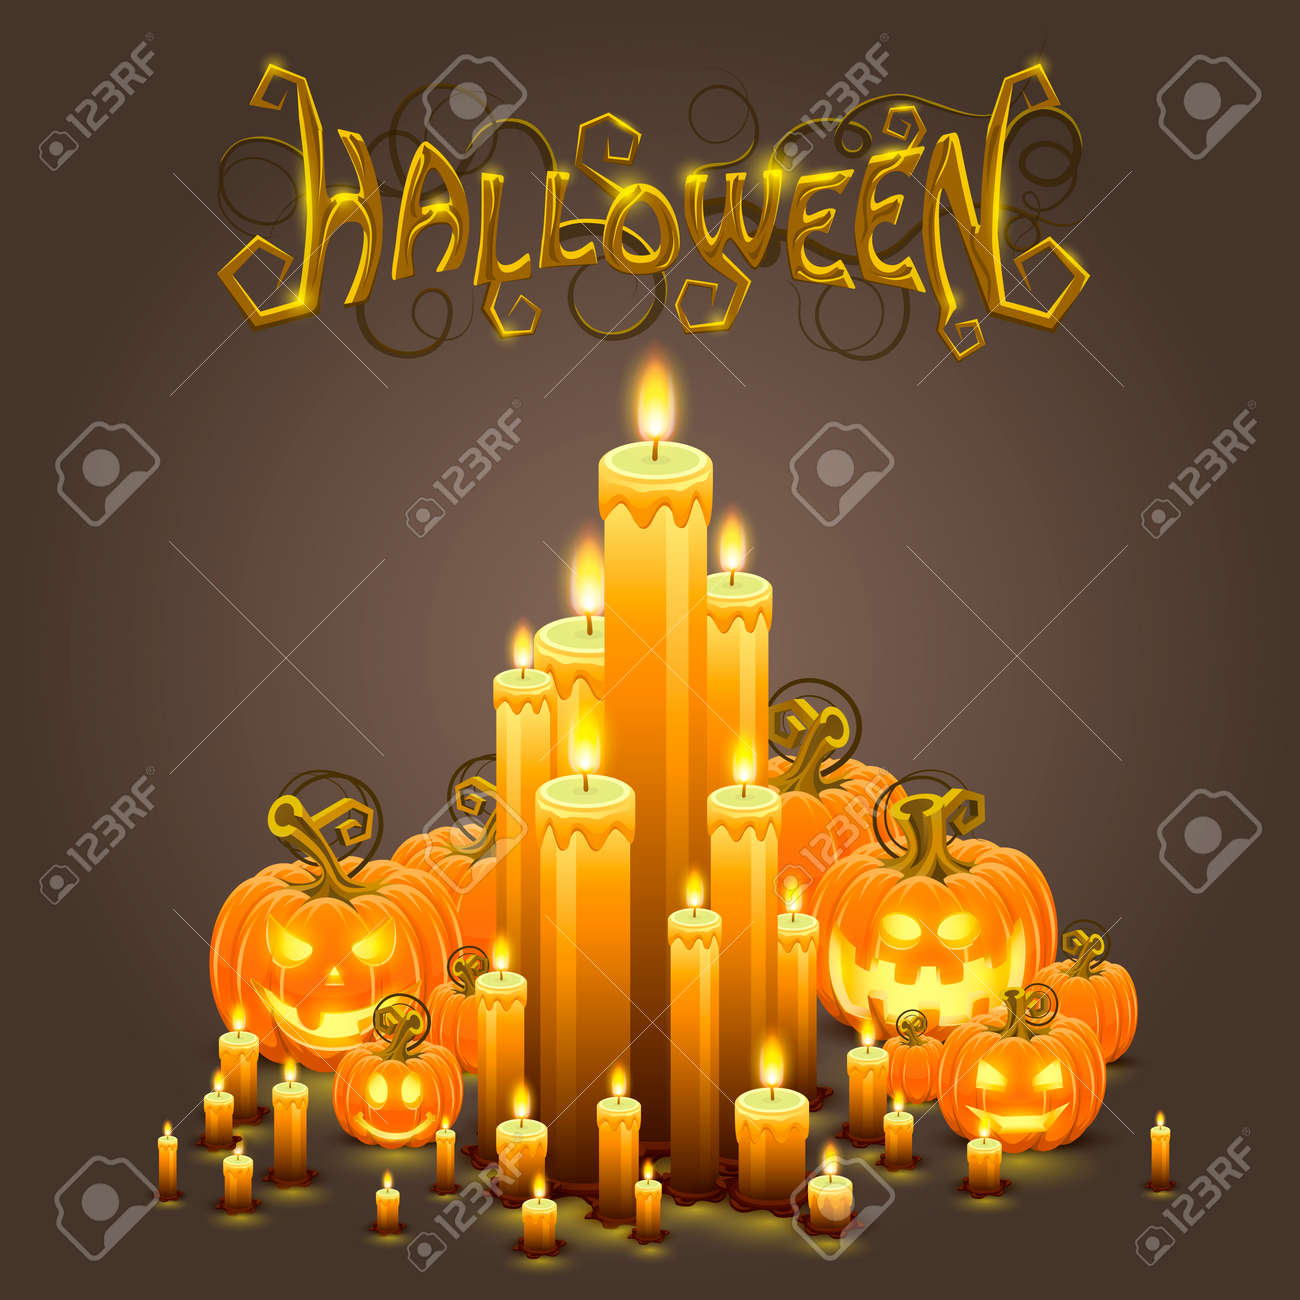 cover halloween pumpkin and candles. royalty free cliparts, vectors